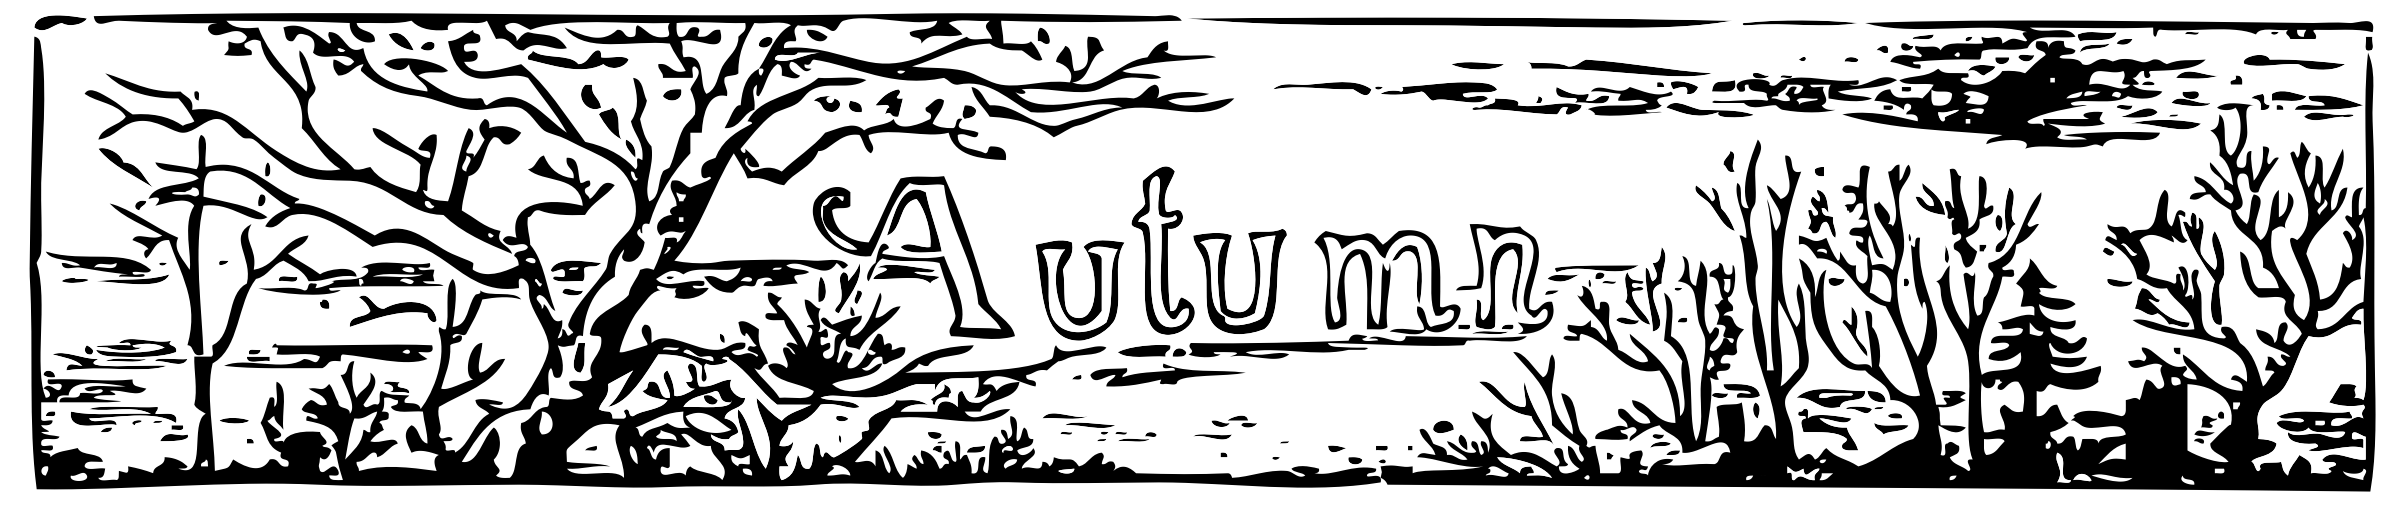 Autumn header by johnny_automatic